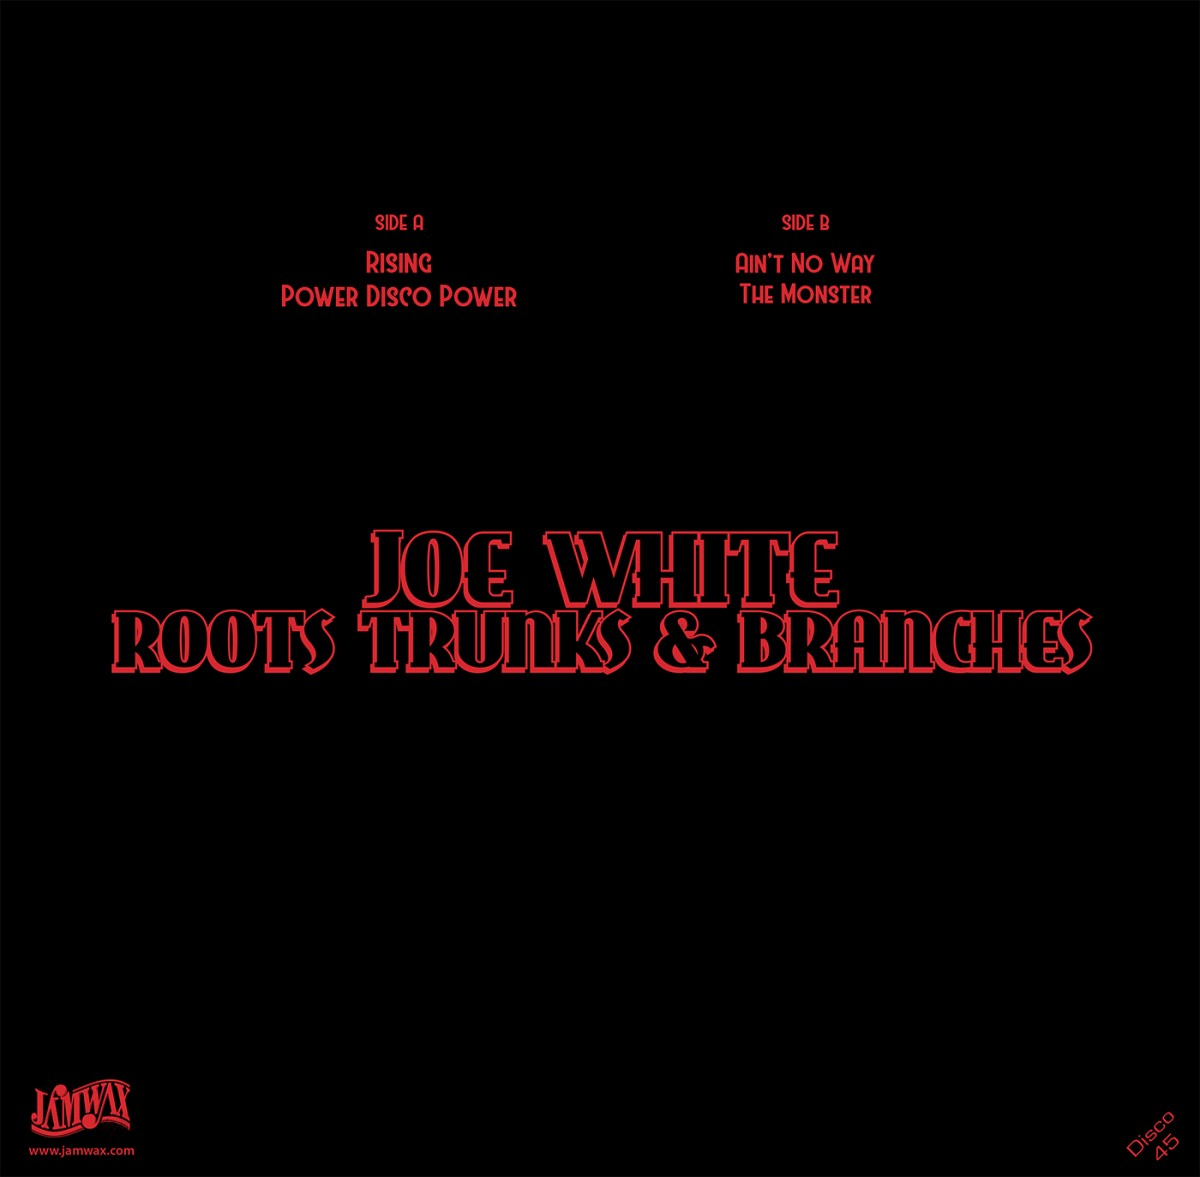 Joe White & Roots Trunks & Branches – Rising / Power Disco Power